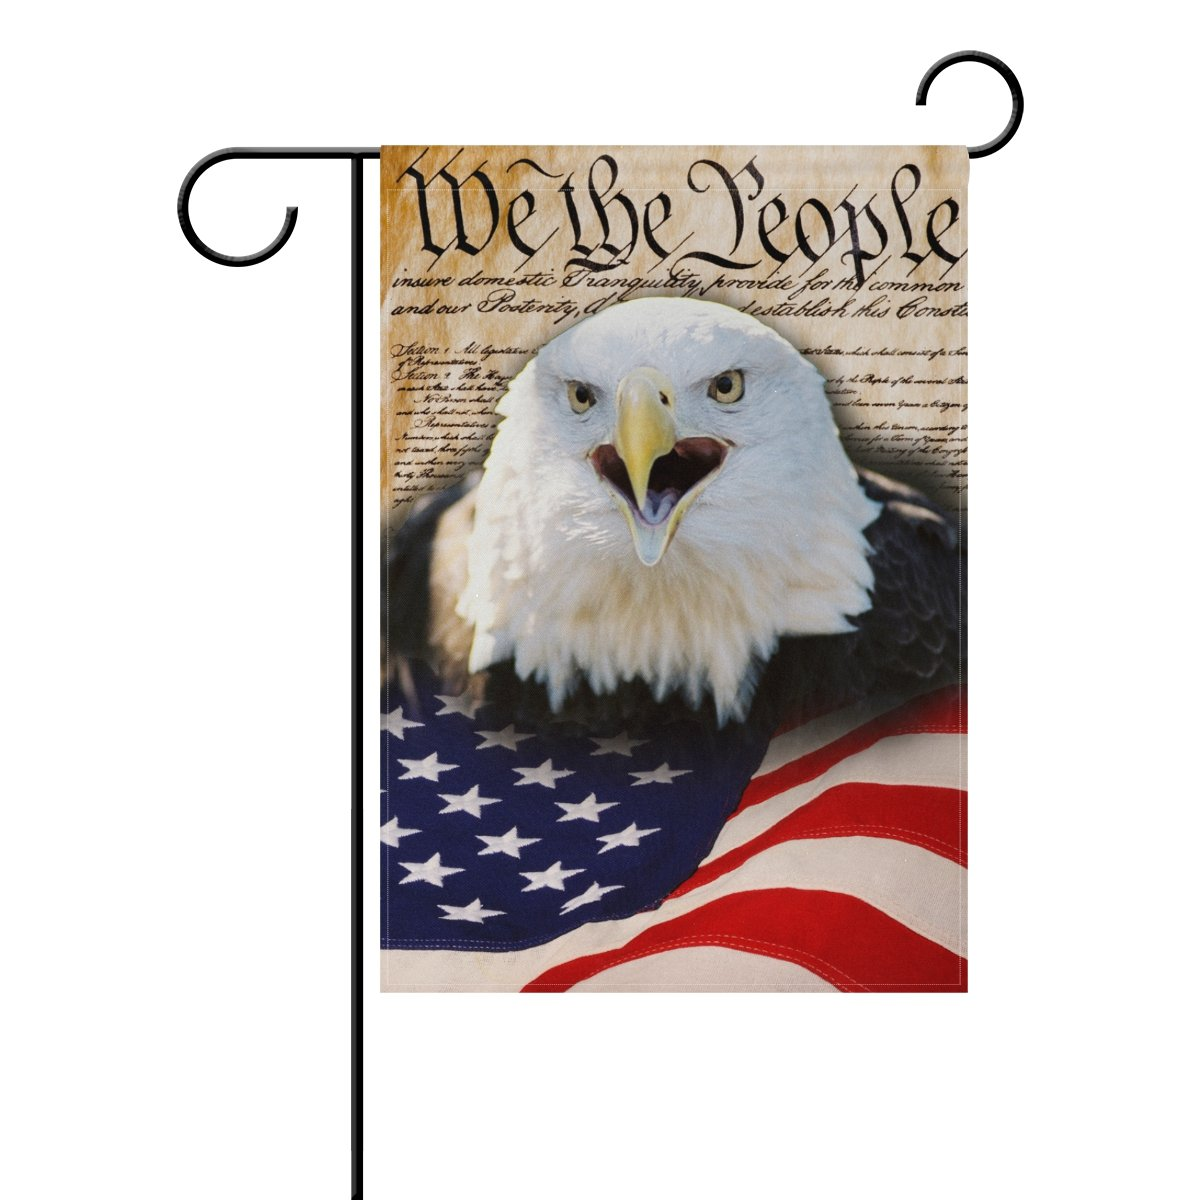 Naanle 4th of July Long Polyester Garden Flag 28 x 40 Inches Double Sided, American Flag Bald Eagle Decorative House Flag for Wedding Party Home Decor